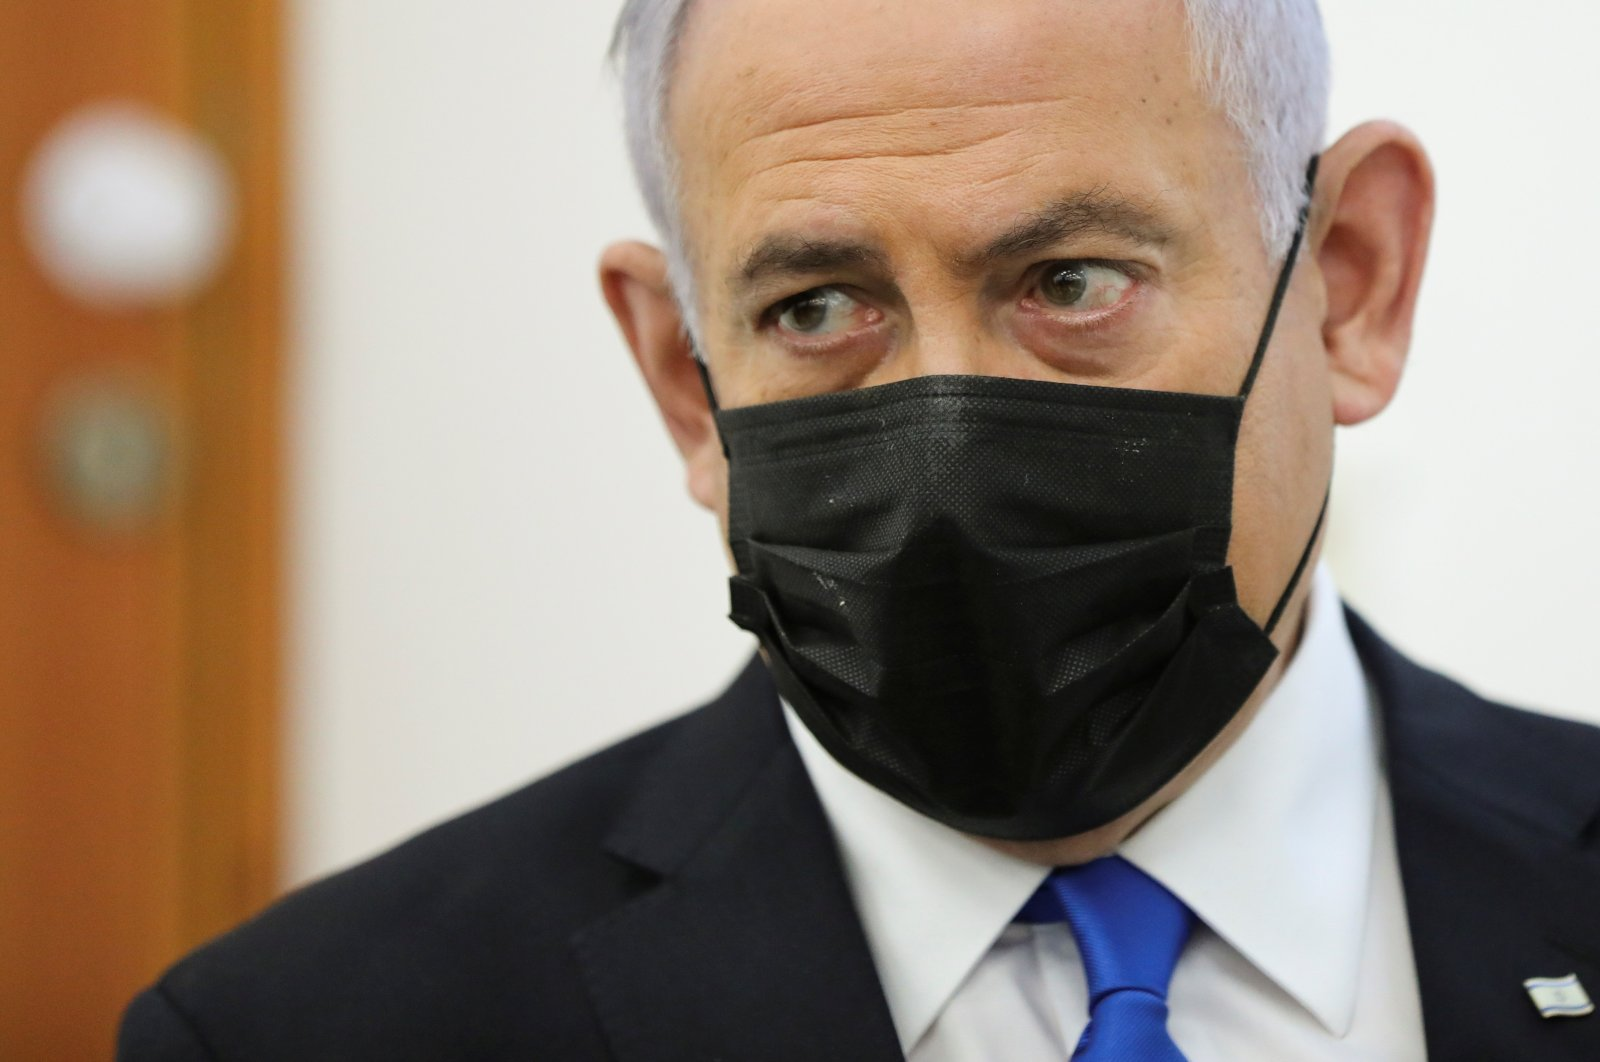 Israeli Prime Minister Benjamin Netanyahu is seen in this file photo dated April 5, 2021 (Reuters Photo)